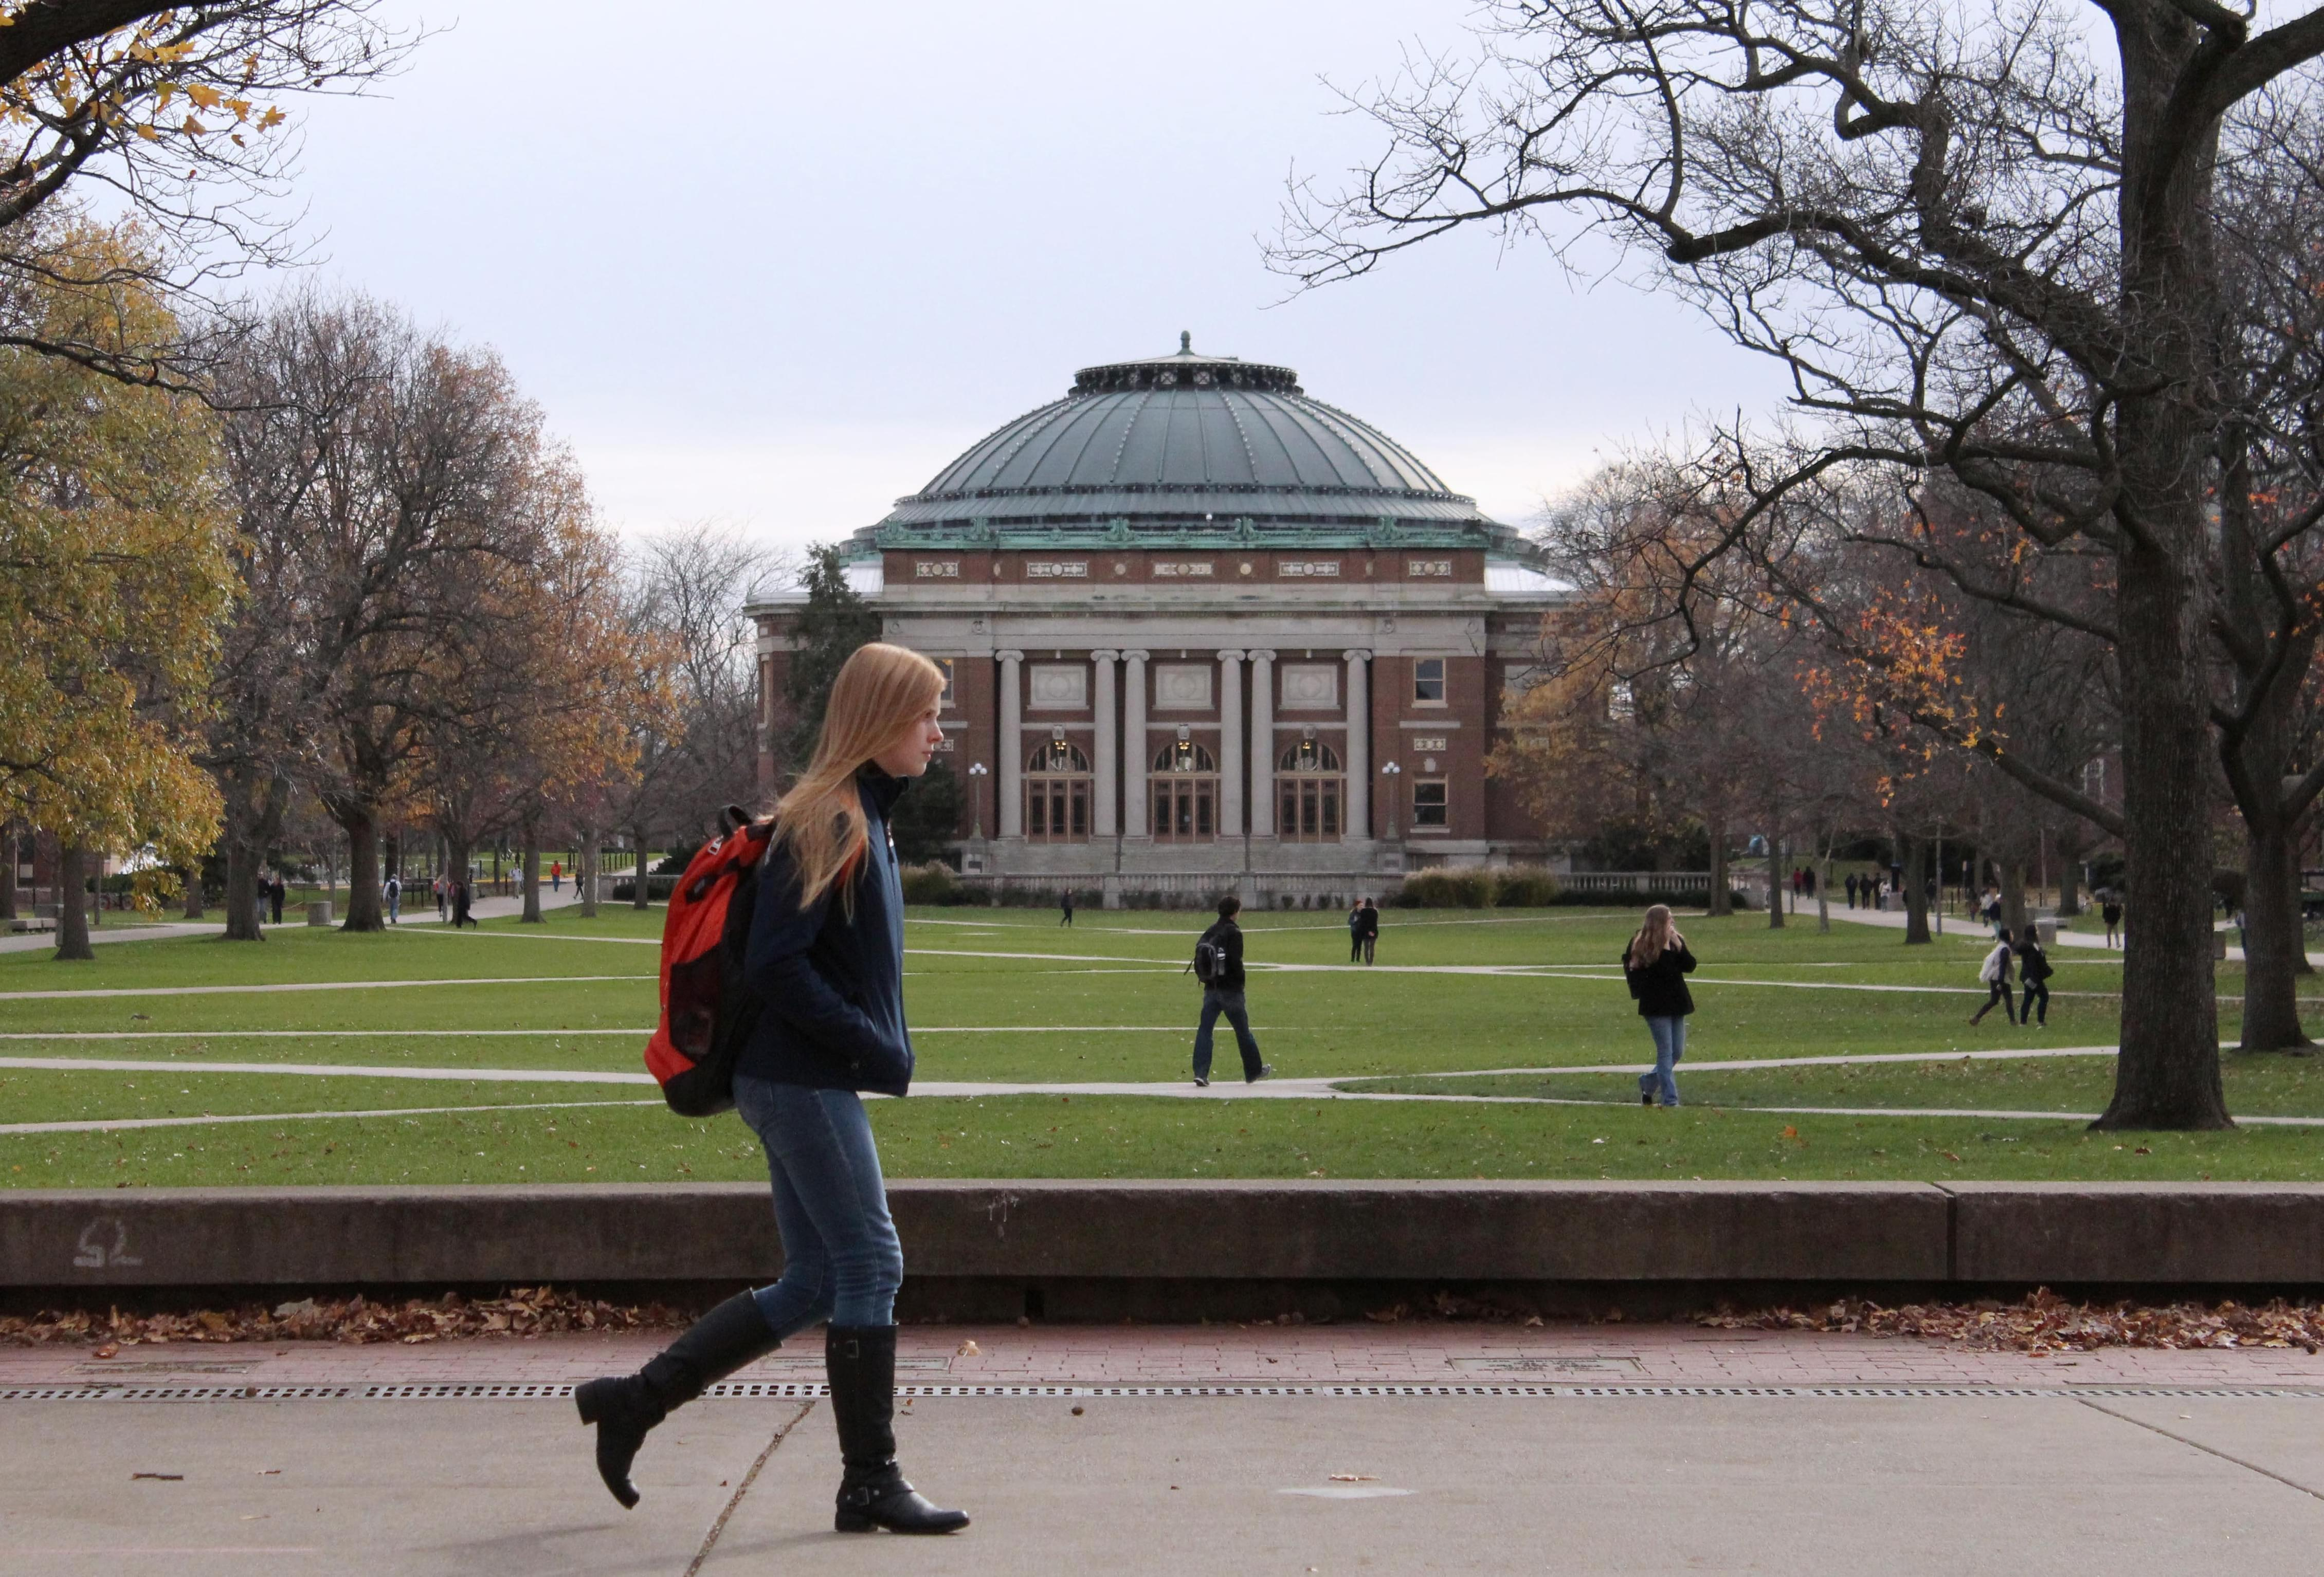 In this Nov. 20, 2015 file photo, University of Illinois students walk across the Main Quad on campus in Urbana, Ill. On Thursday, Jan. 21, 2016, university trustees approved a tuition freeze for instate freshmen.